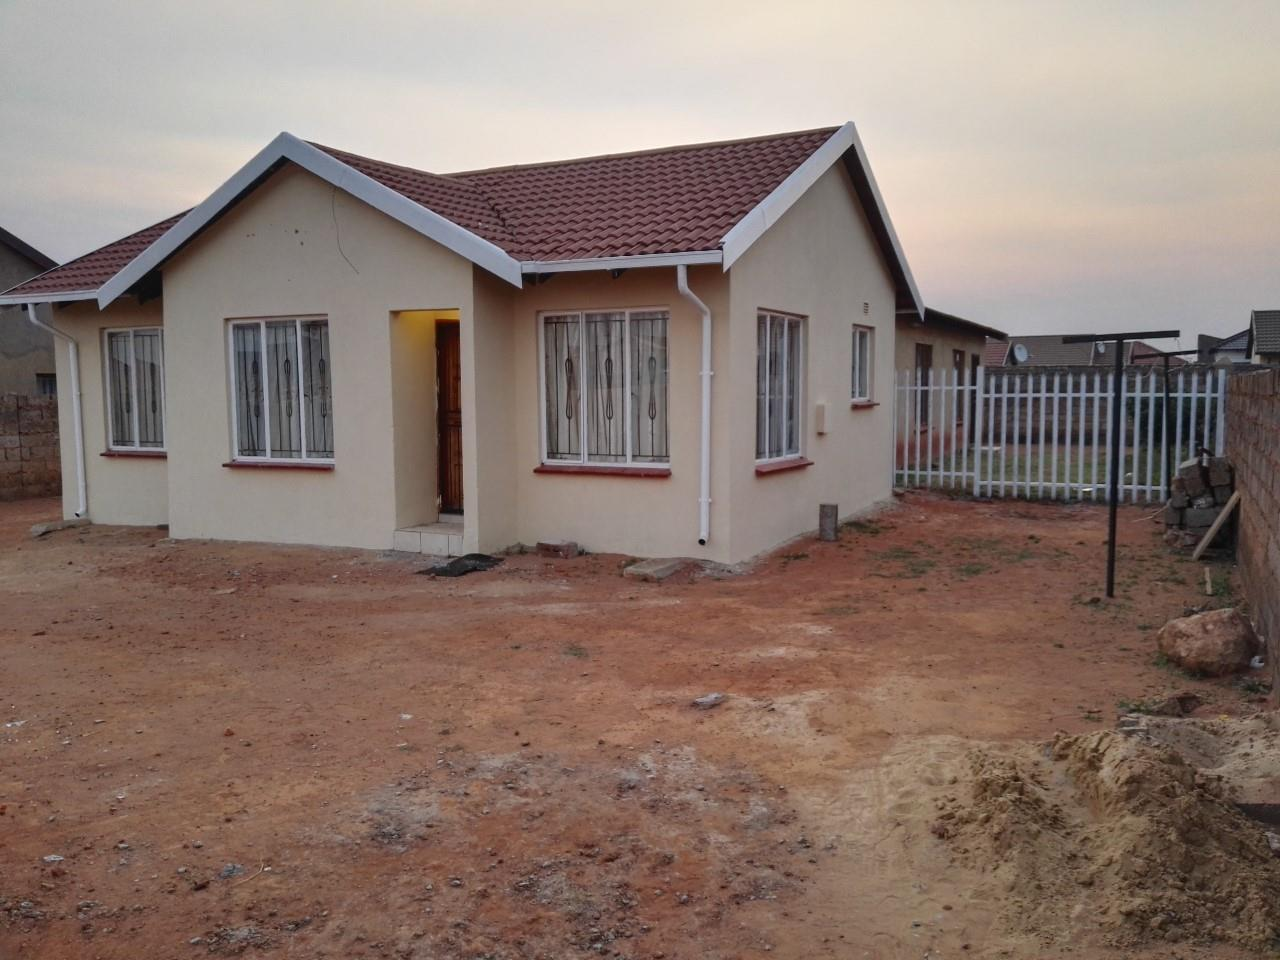 3 Bedroom House For Sale In Protea Glen Re Max Of